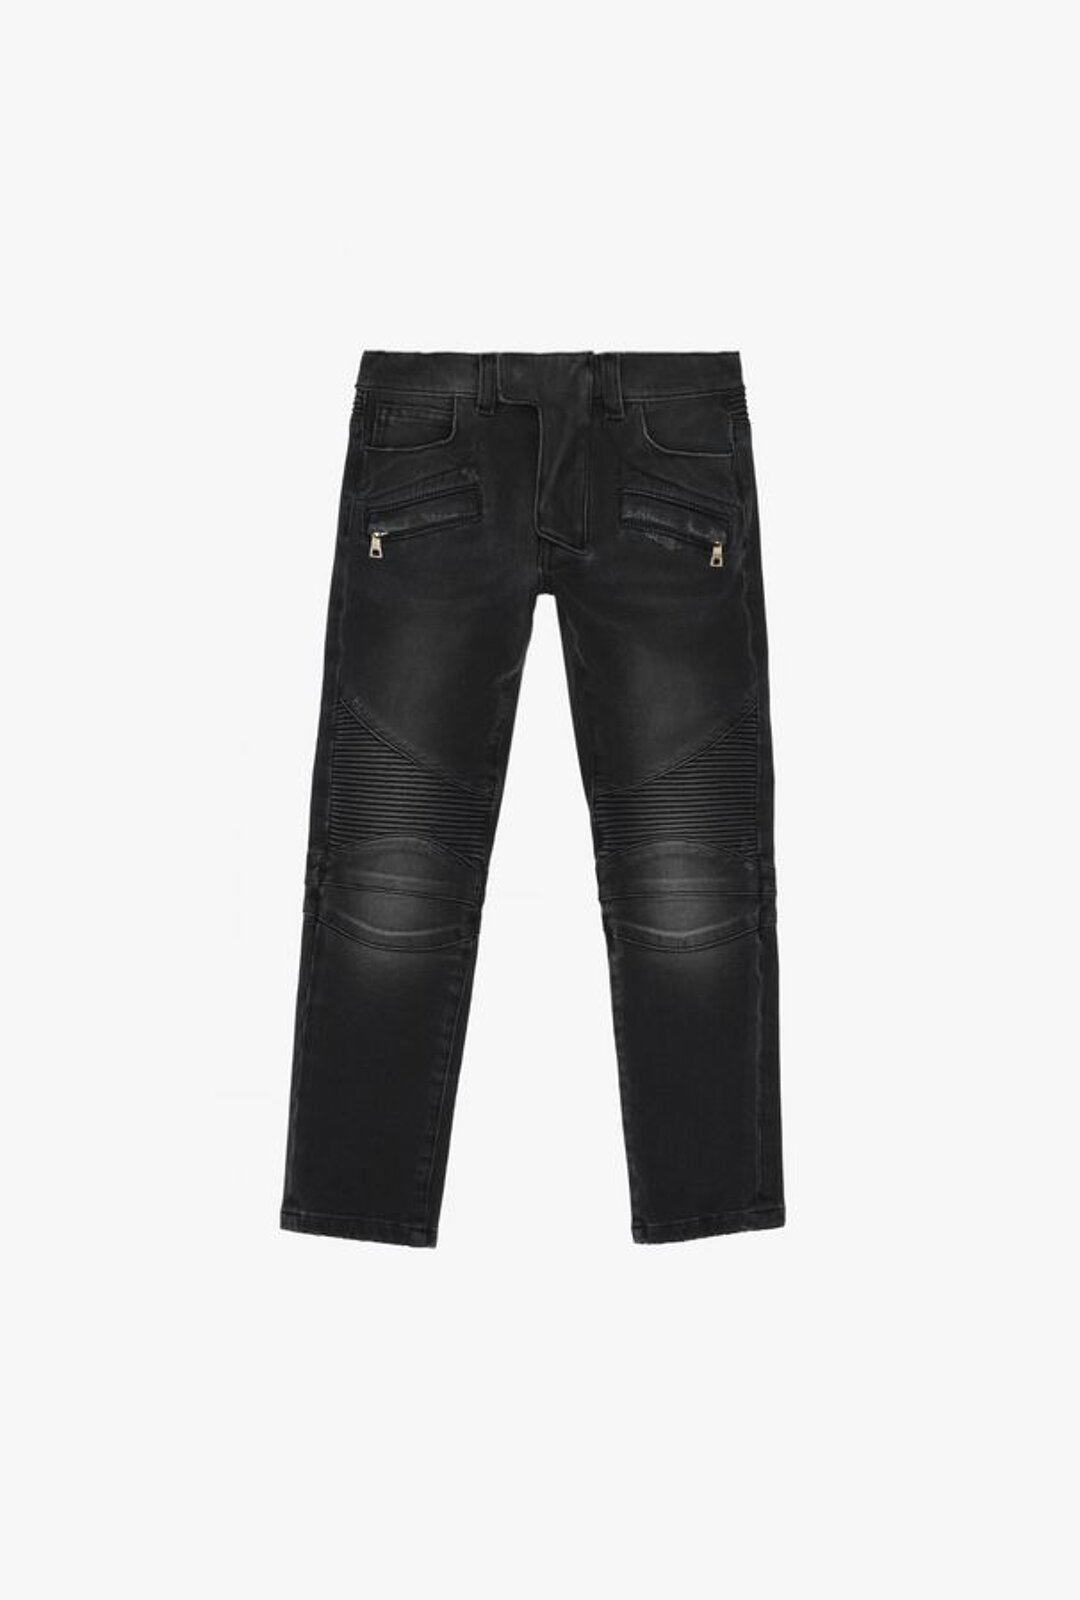 Black Cotton Jeans With Faded Effect - Balmain Junior